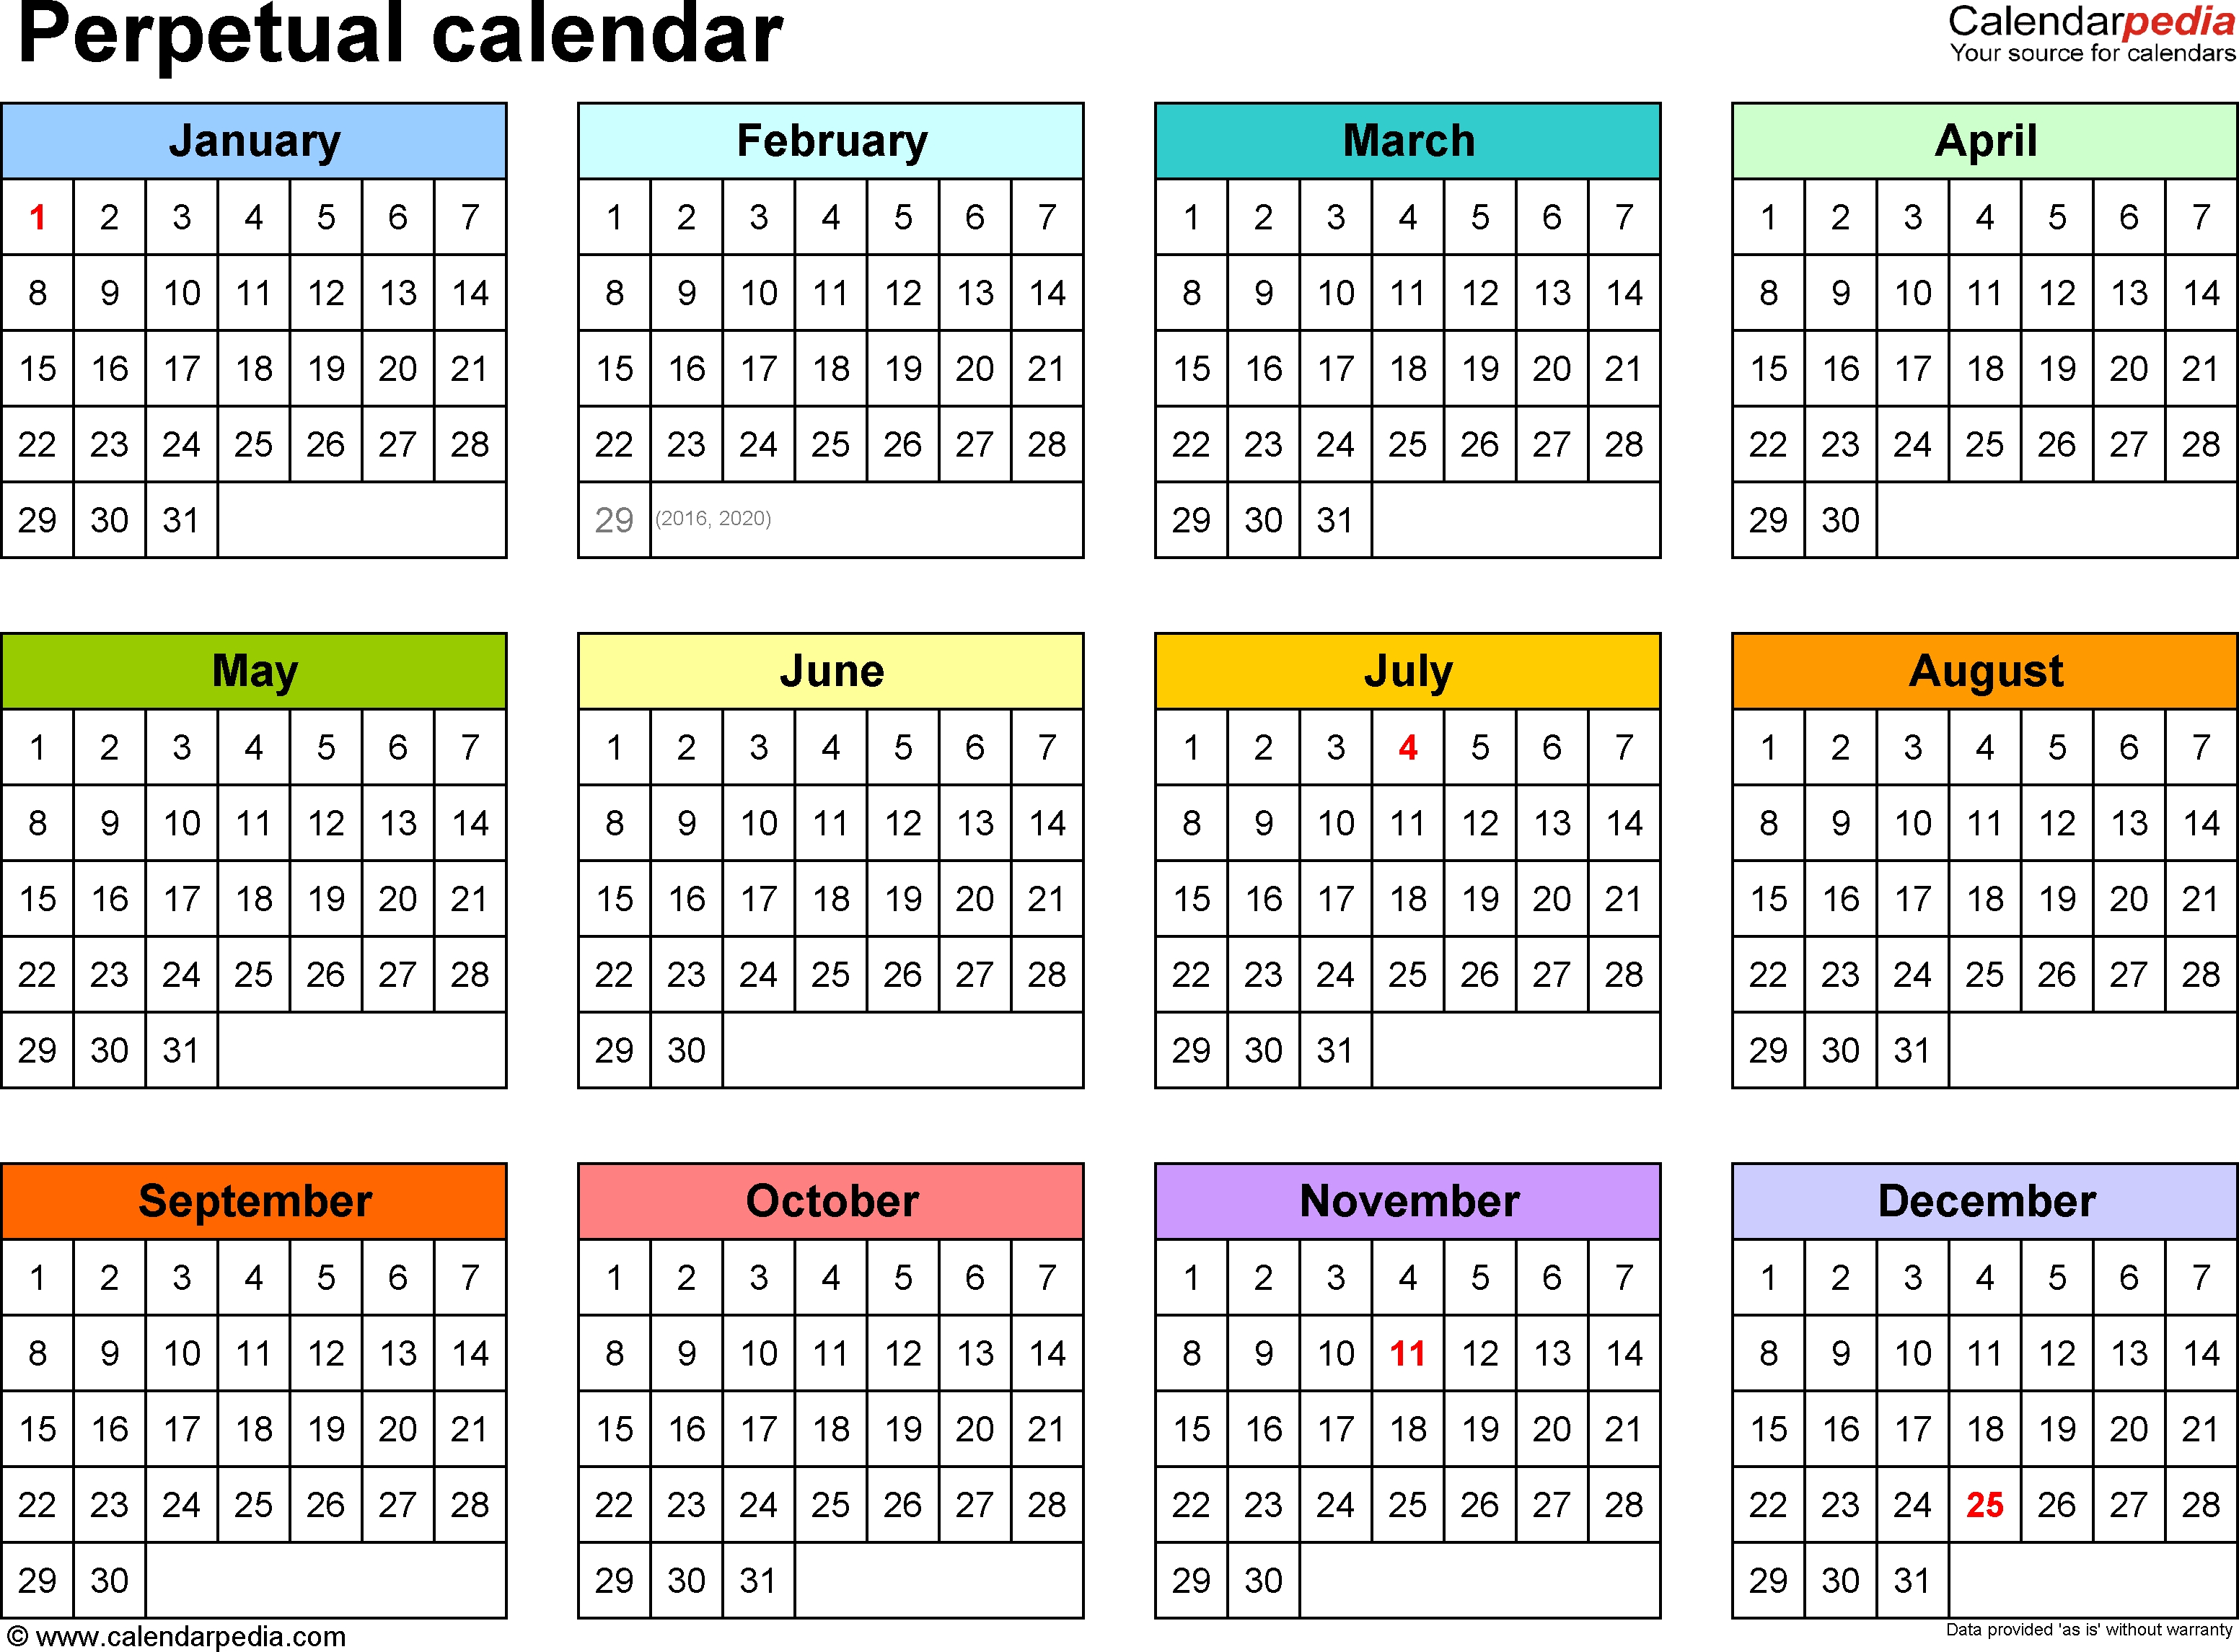 Perpetual Calendars - 7 Free Printable Word Templates inside Year At A Glance Calendar Template